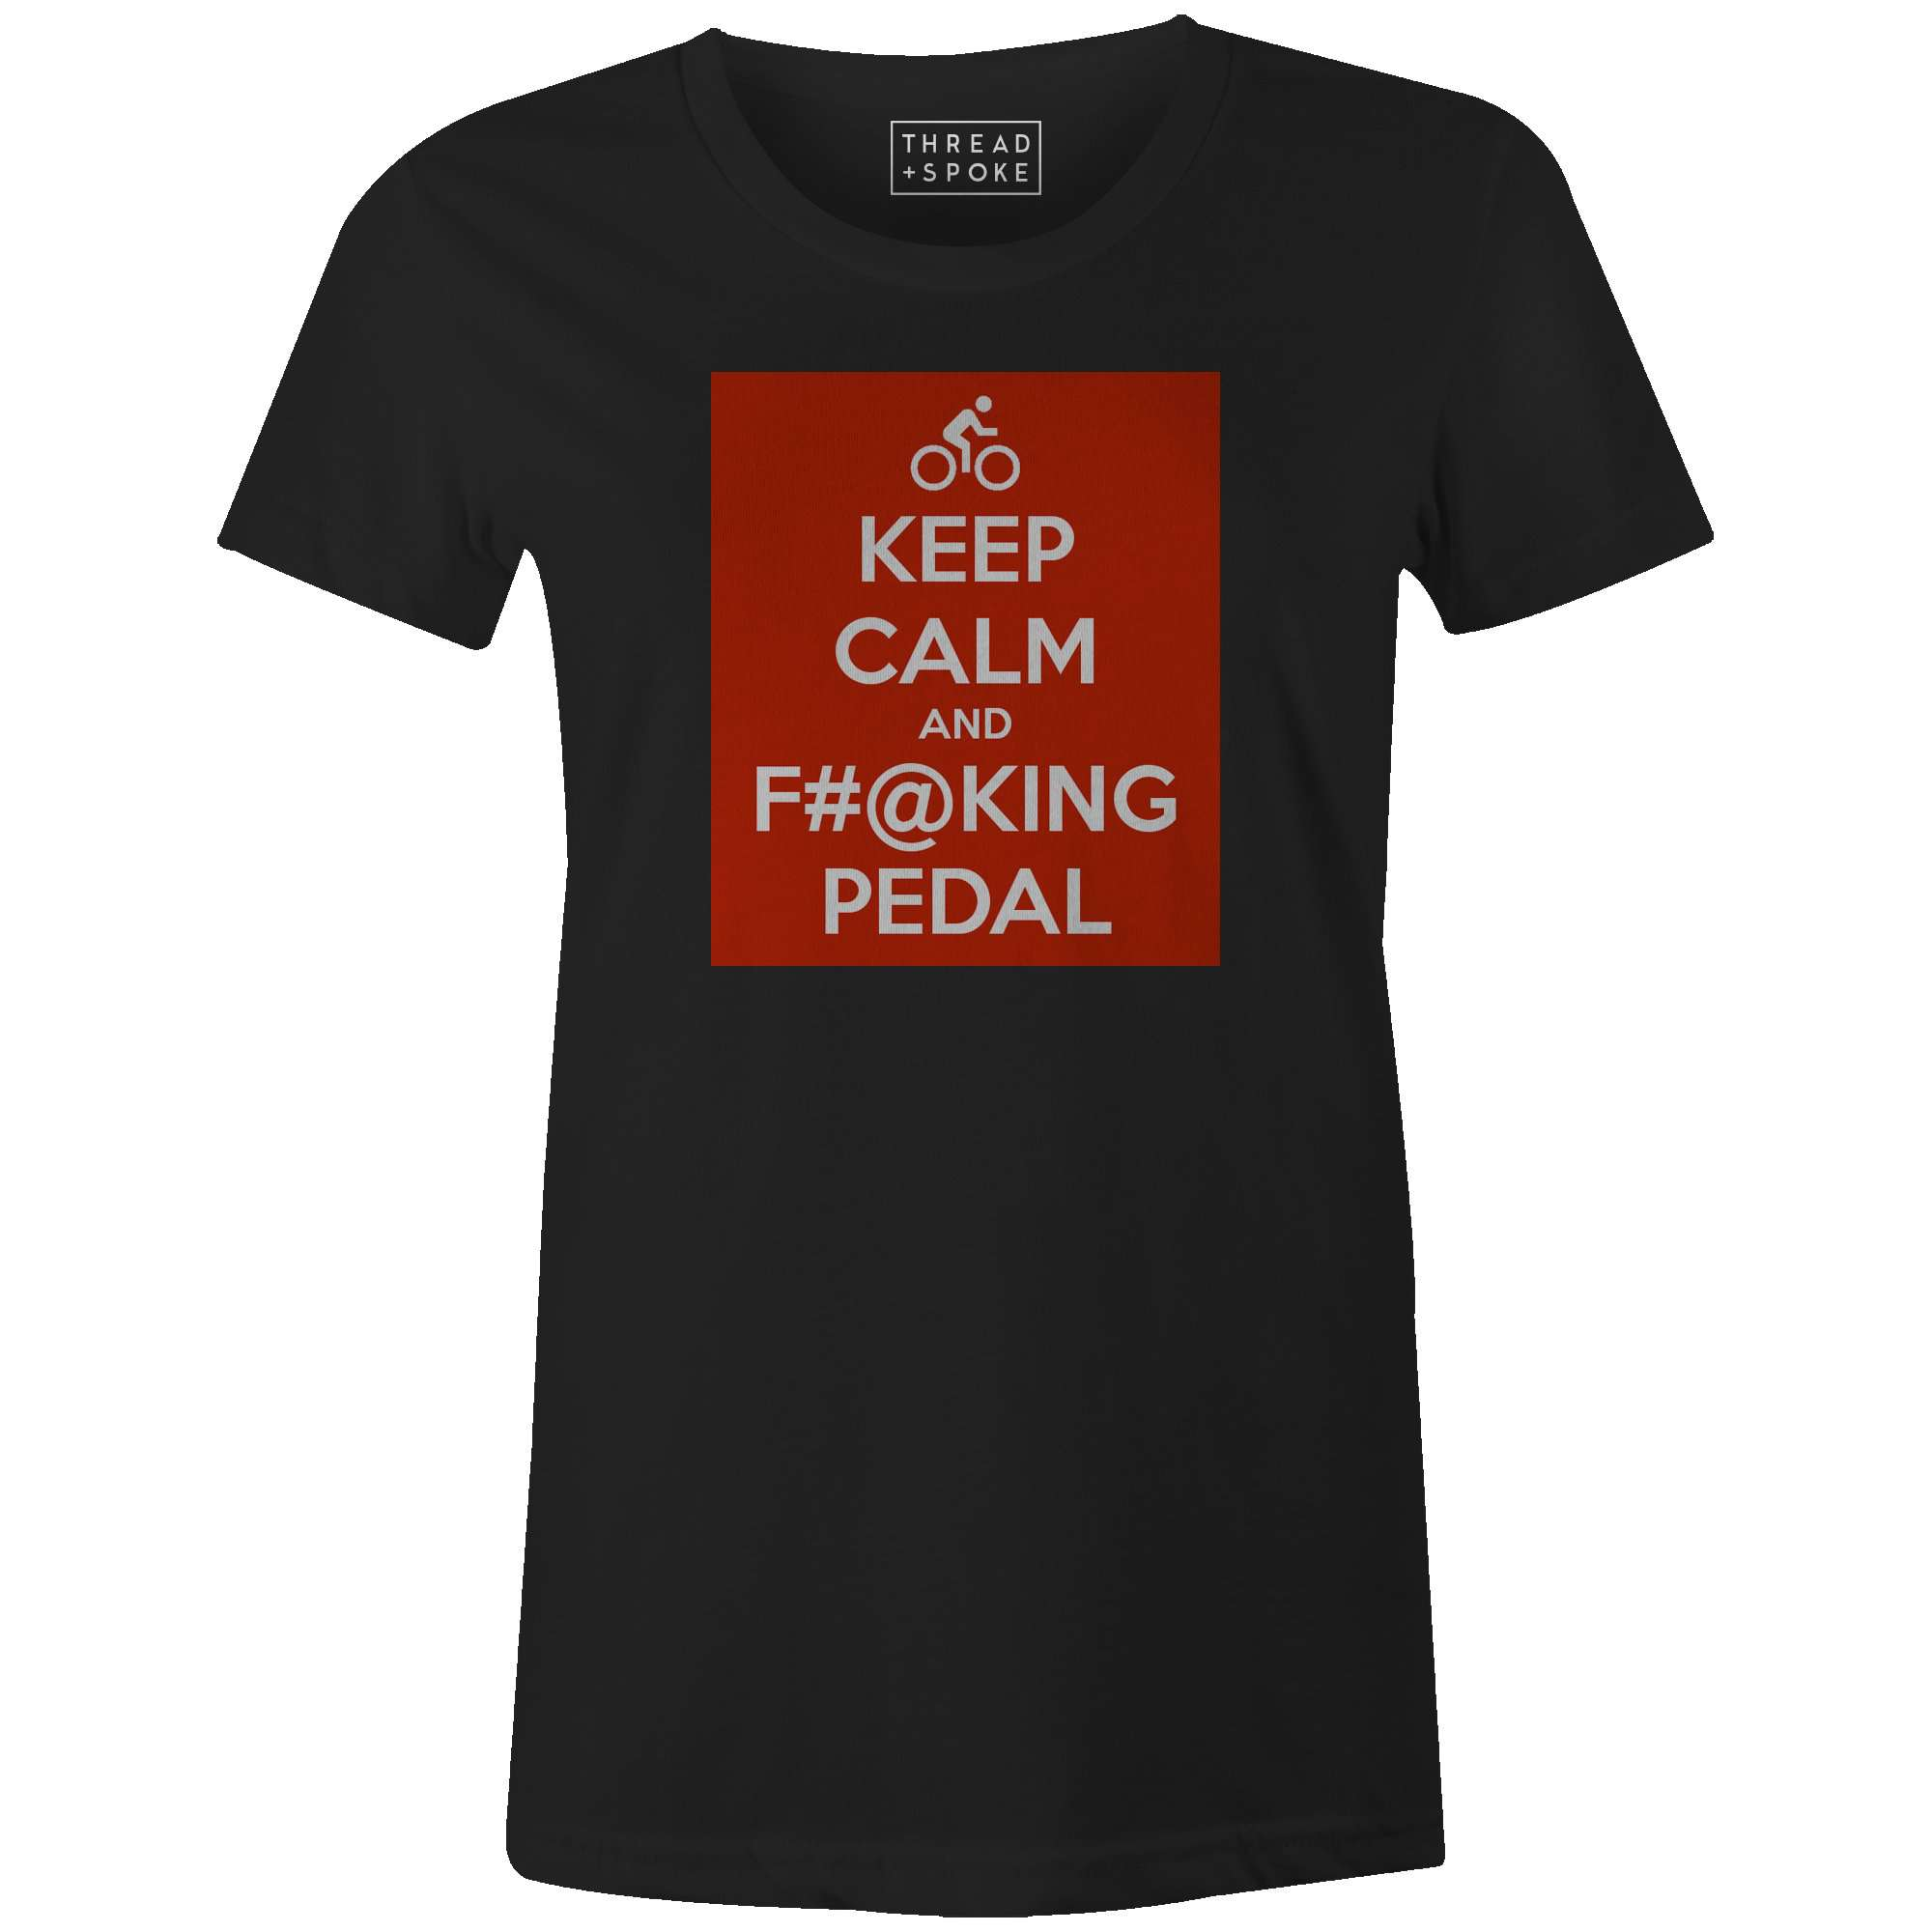 Keep Calm and Pedal Women'sMile24 - THREAD+SPOKE | MTB APPAREL | ROAD BIKING T-SHIRTS | BICYCLE T SHIRTS |